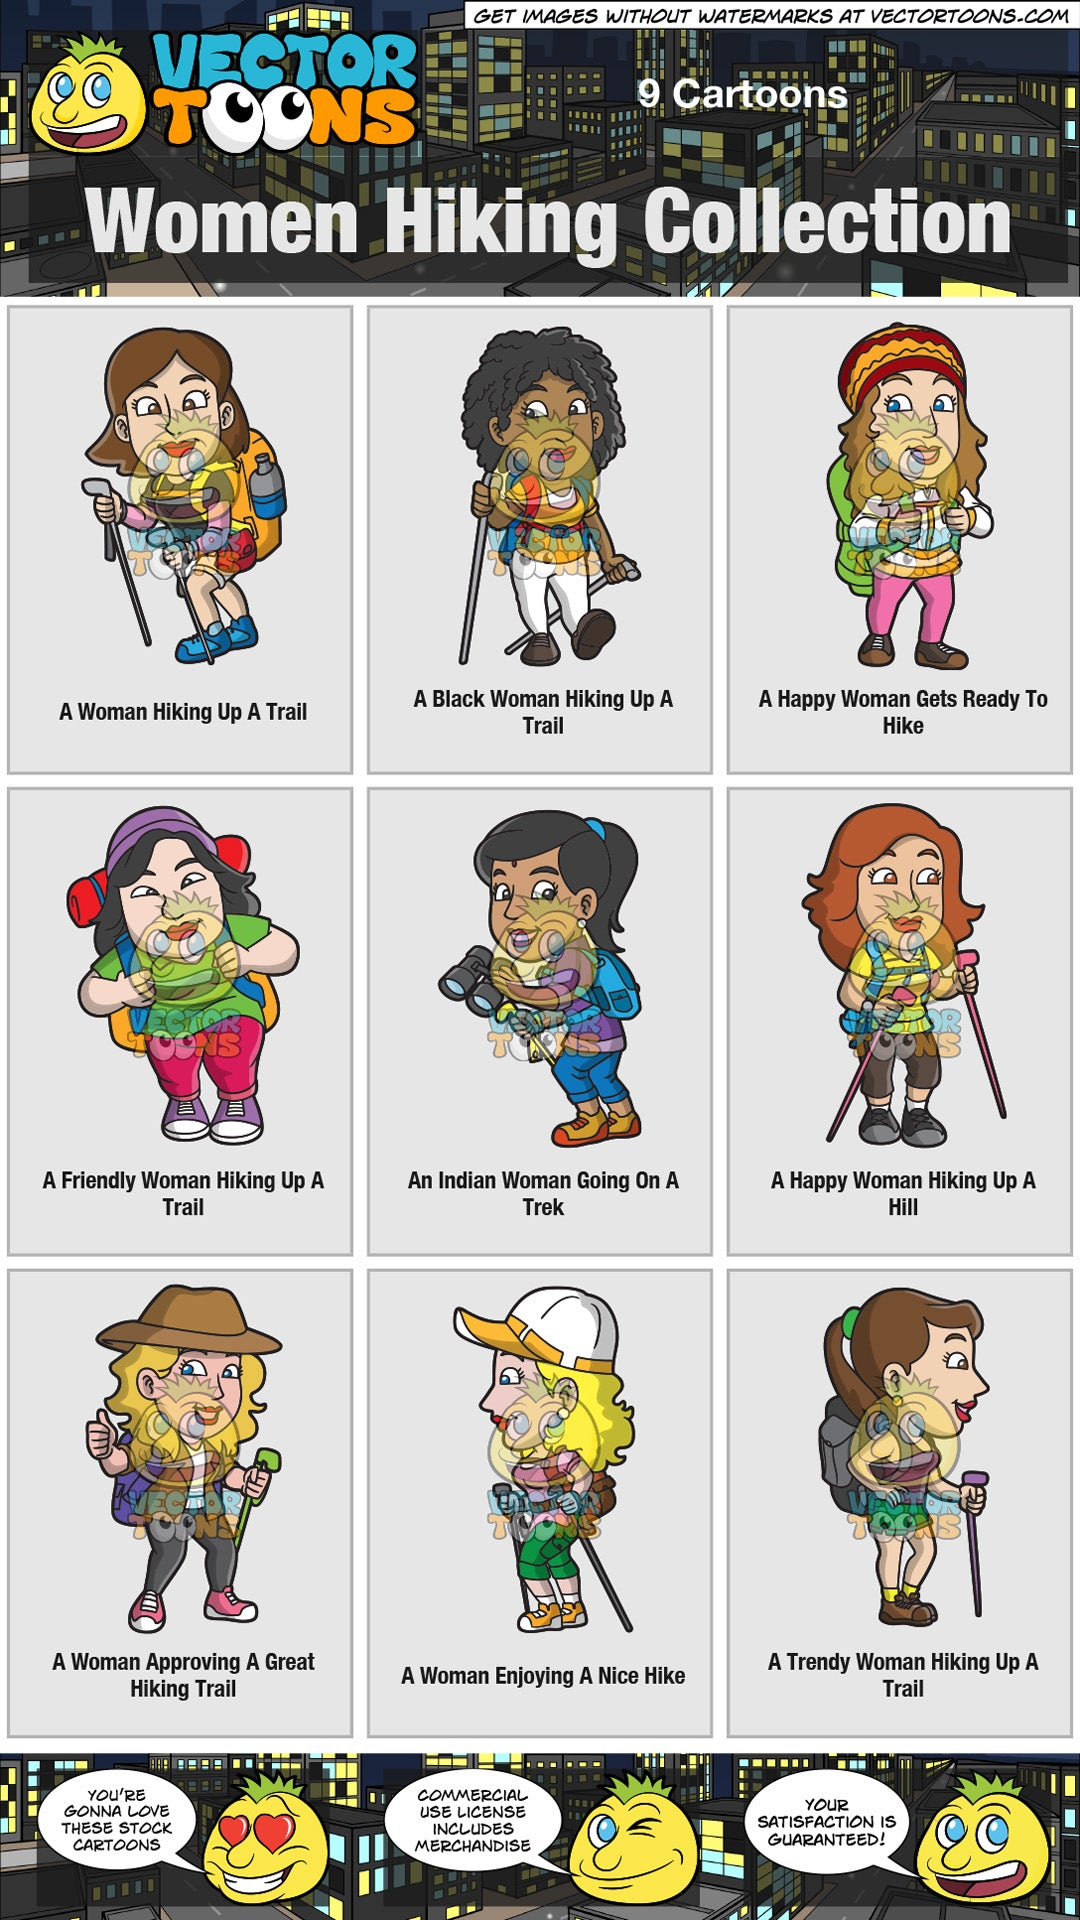 Women Hiking Collection